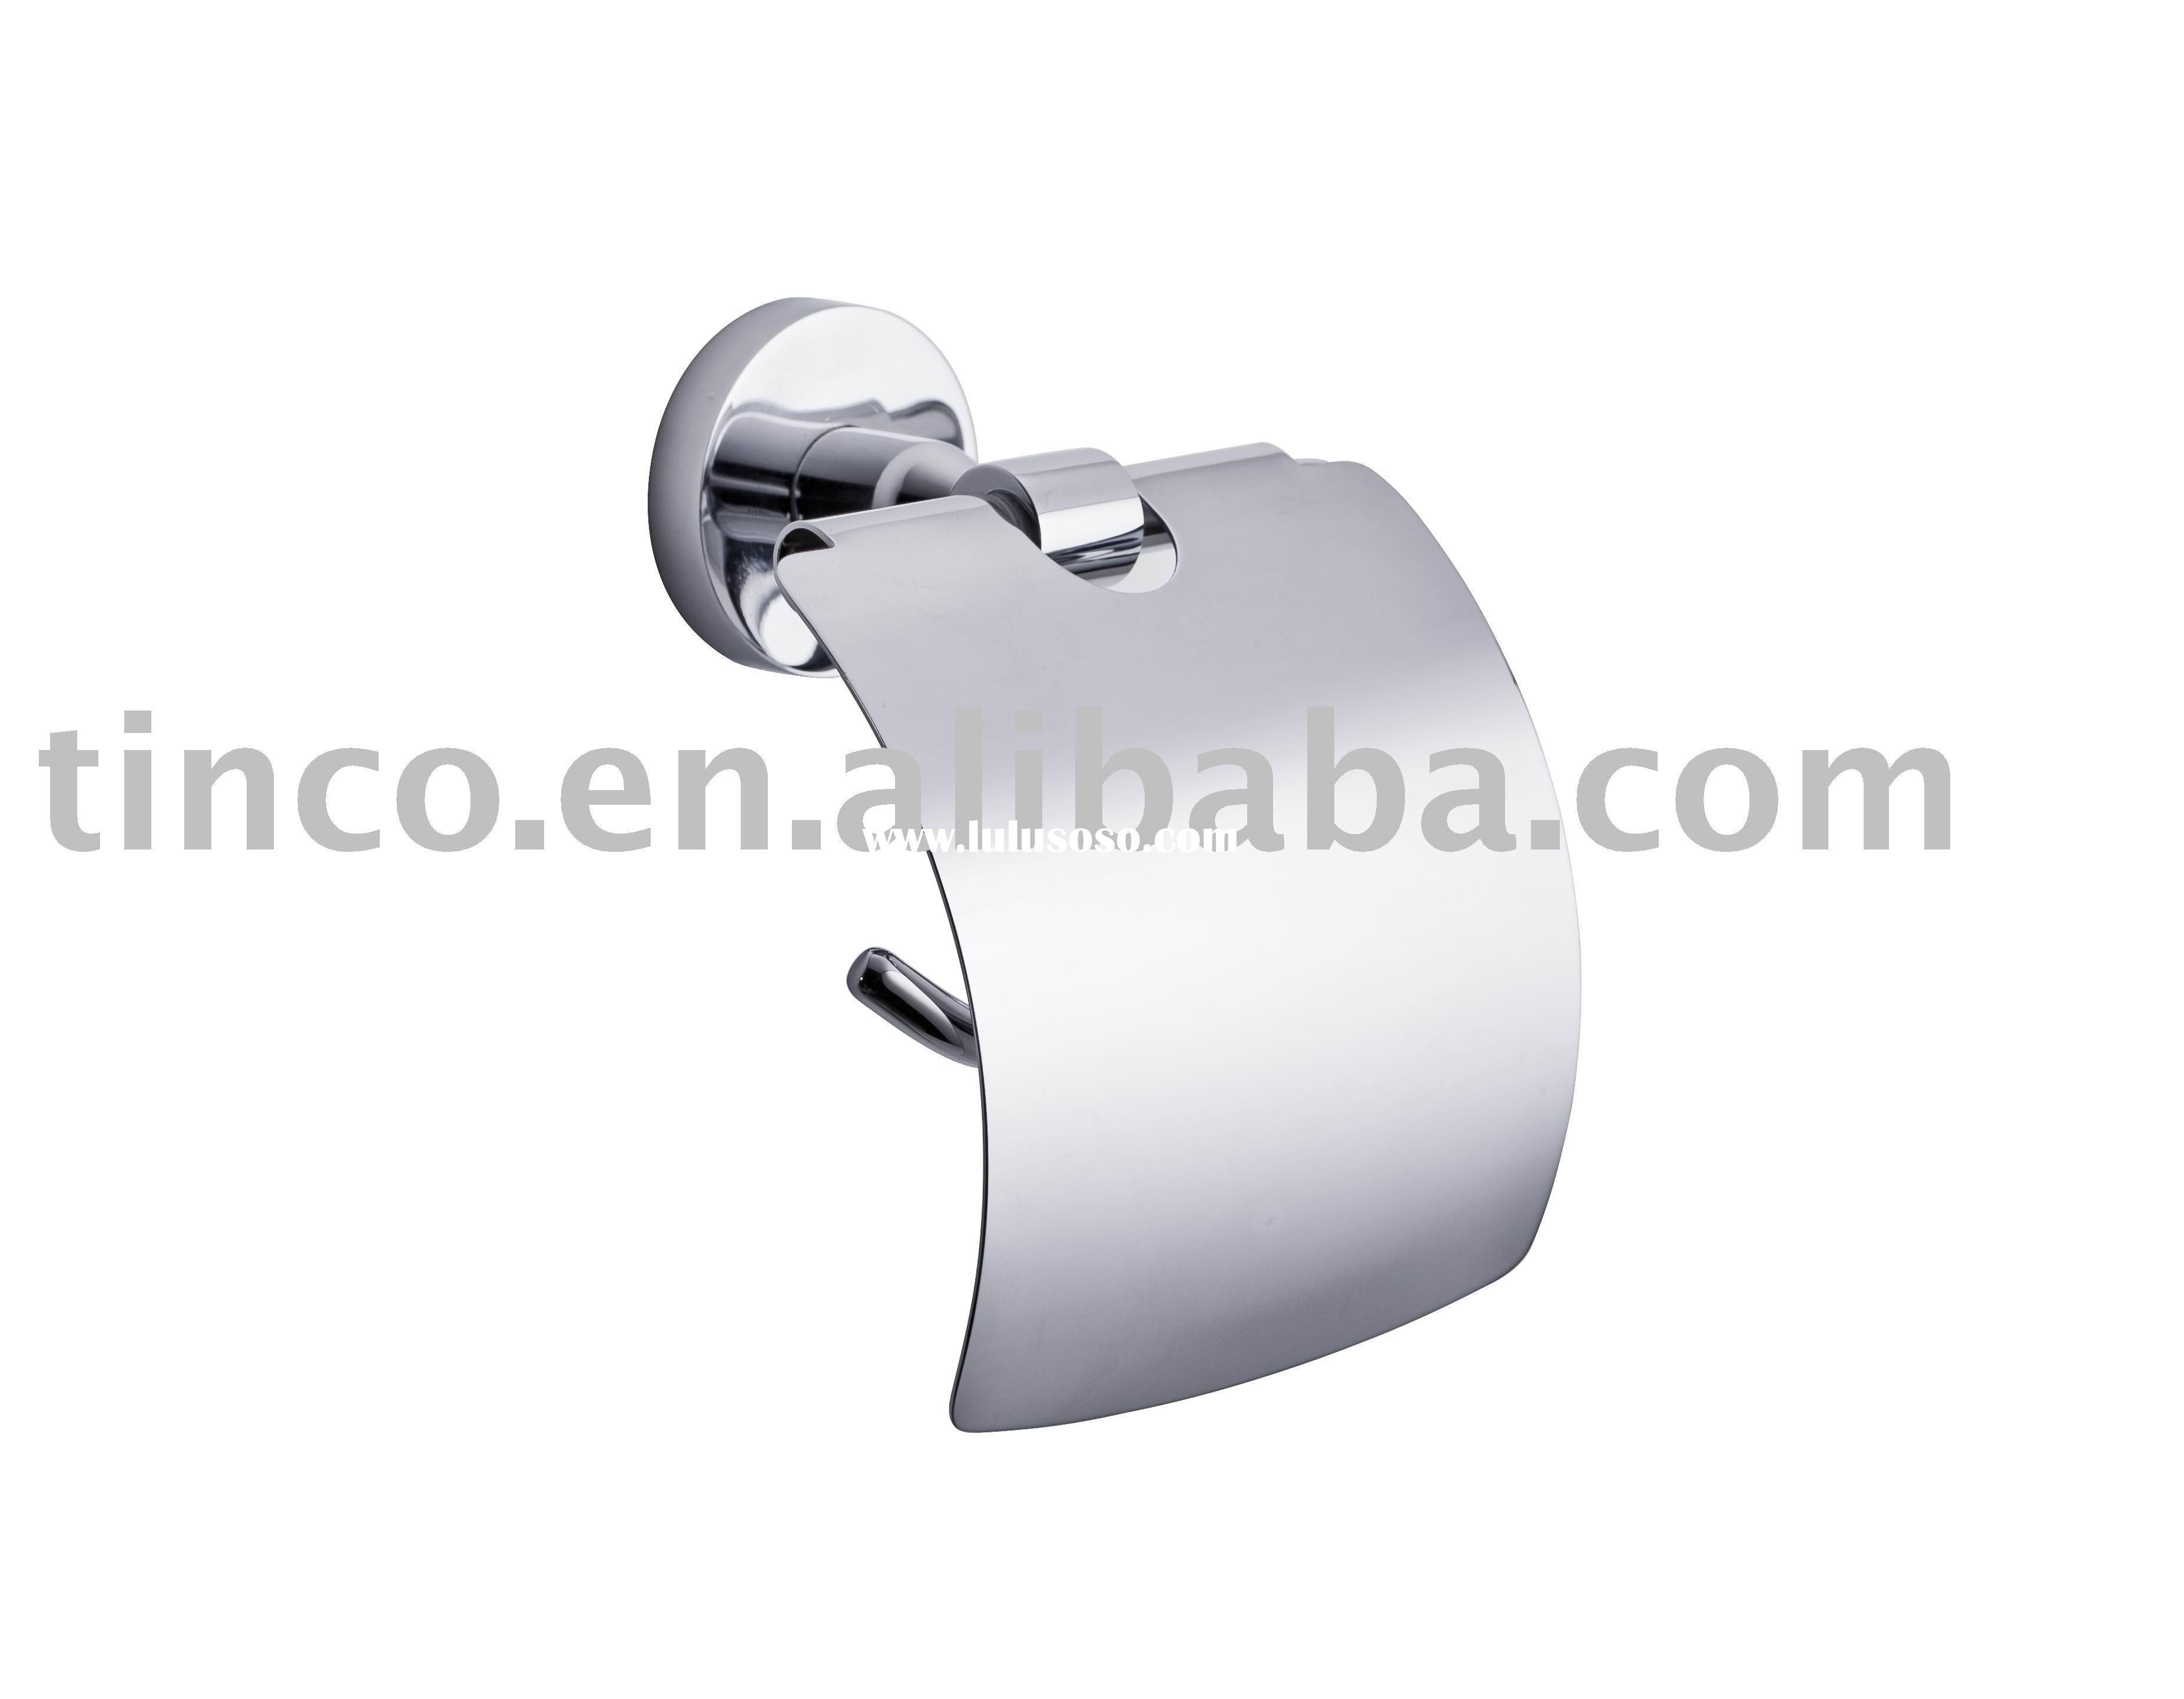 toilet tissue holder with cover/lid